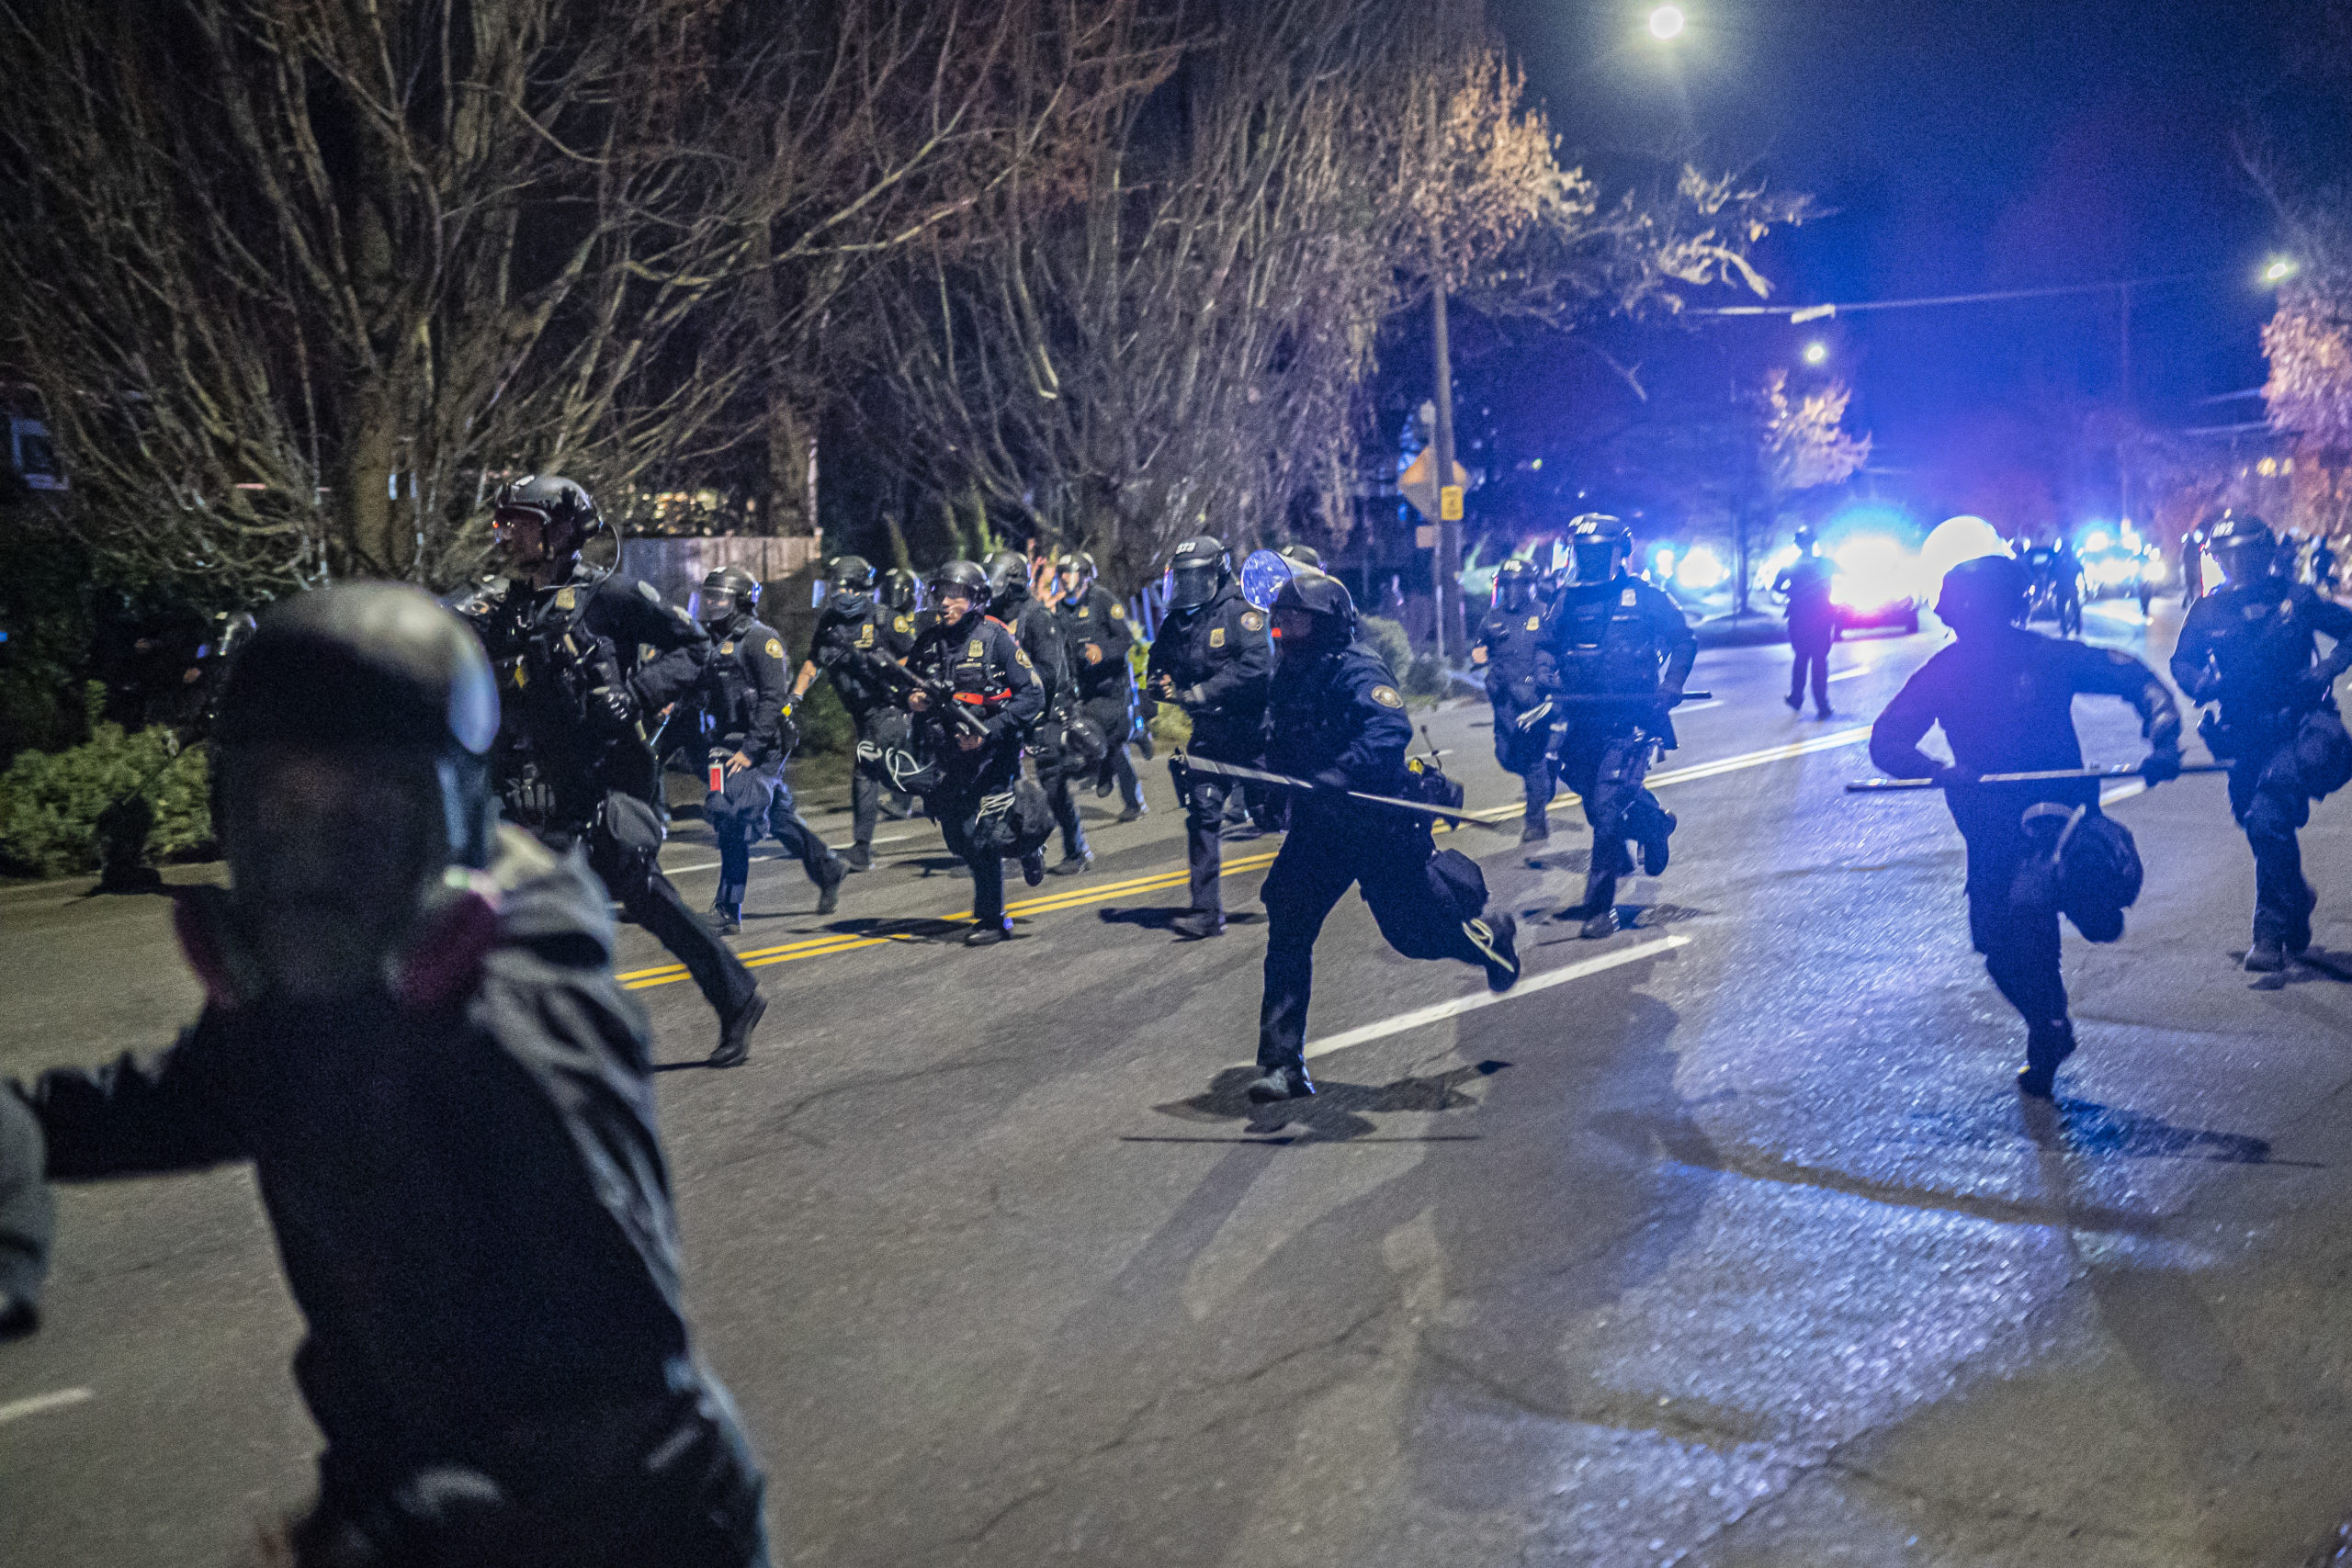 Portland police officers chase demonstrators after a riot was declared during a protest on April 12 in Portland, Oregon. (Nathan Howard/Getty Images)